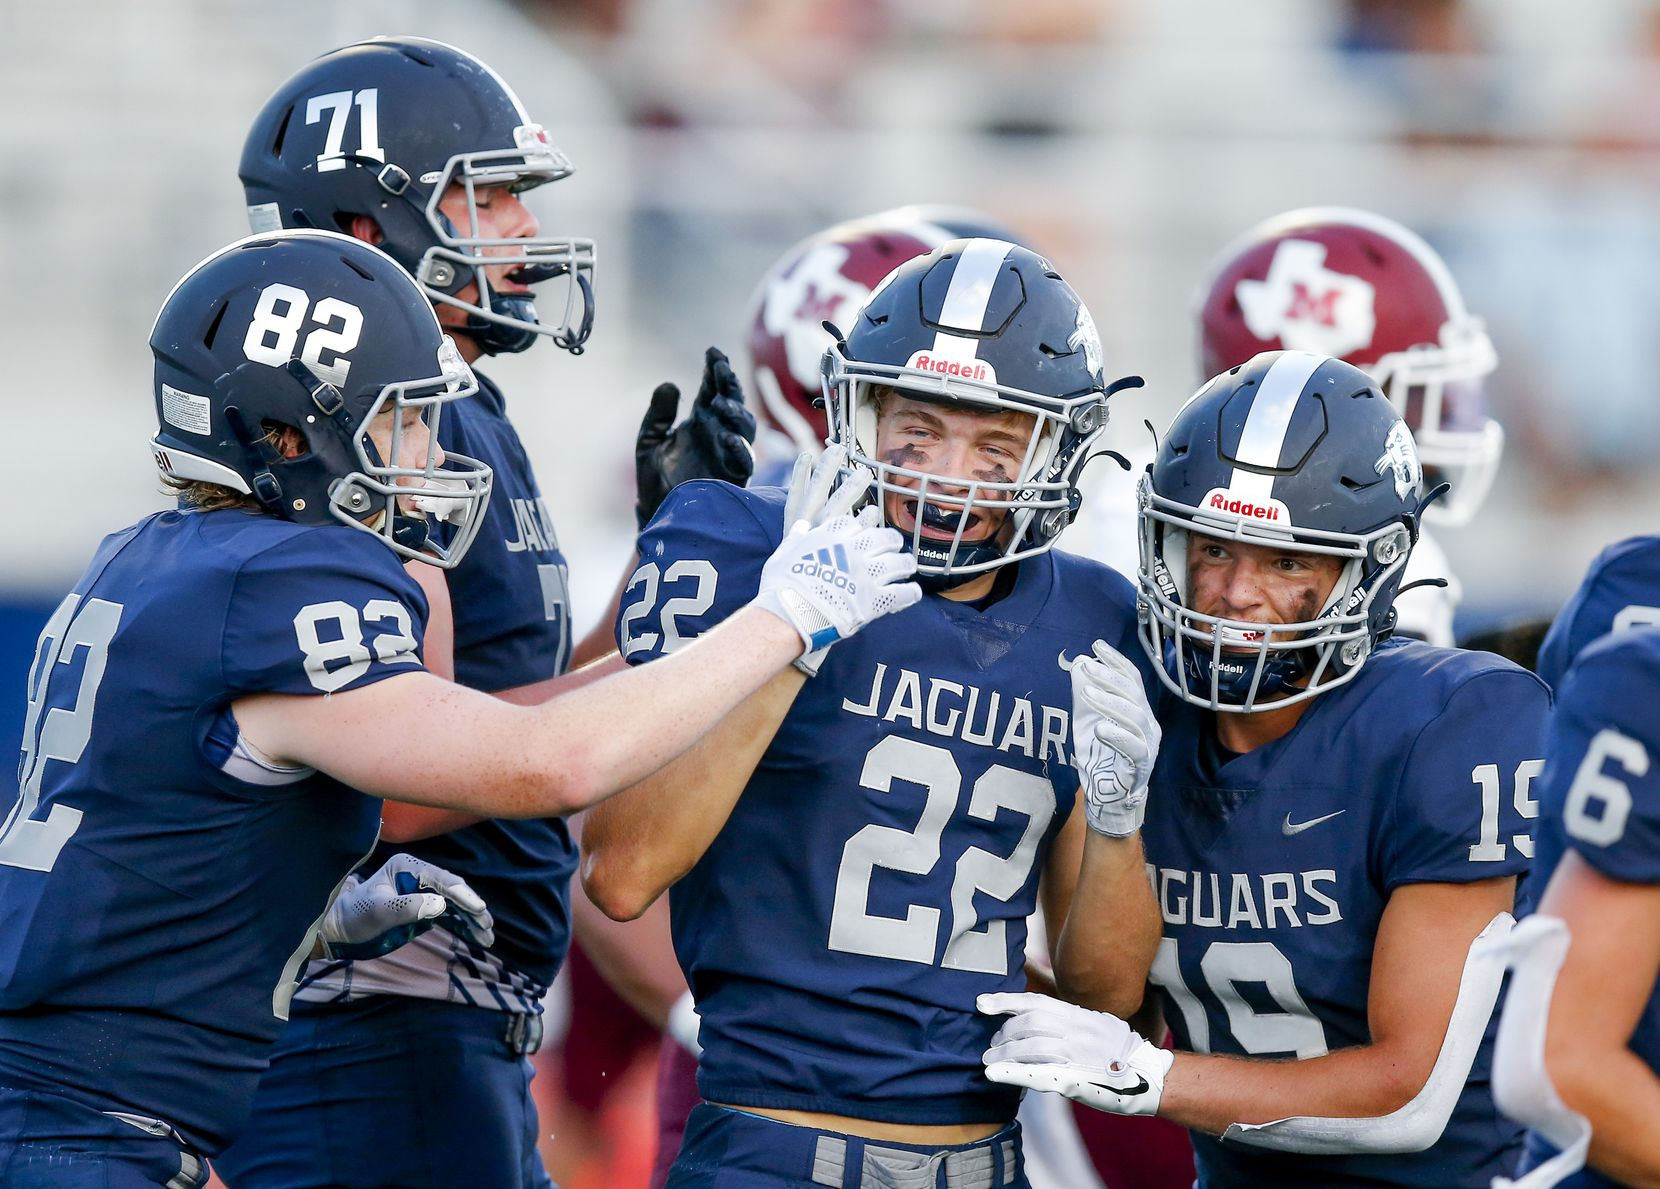 Flower Mound senior running back Cole Smith (22) is congratulated by teammates after scoring a touchdown during the first half of a high school football game against Mesquite at Flower Mound High School, Friday, August 27, 2021. (Brandon Wade/Special Contributor)